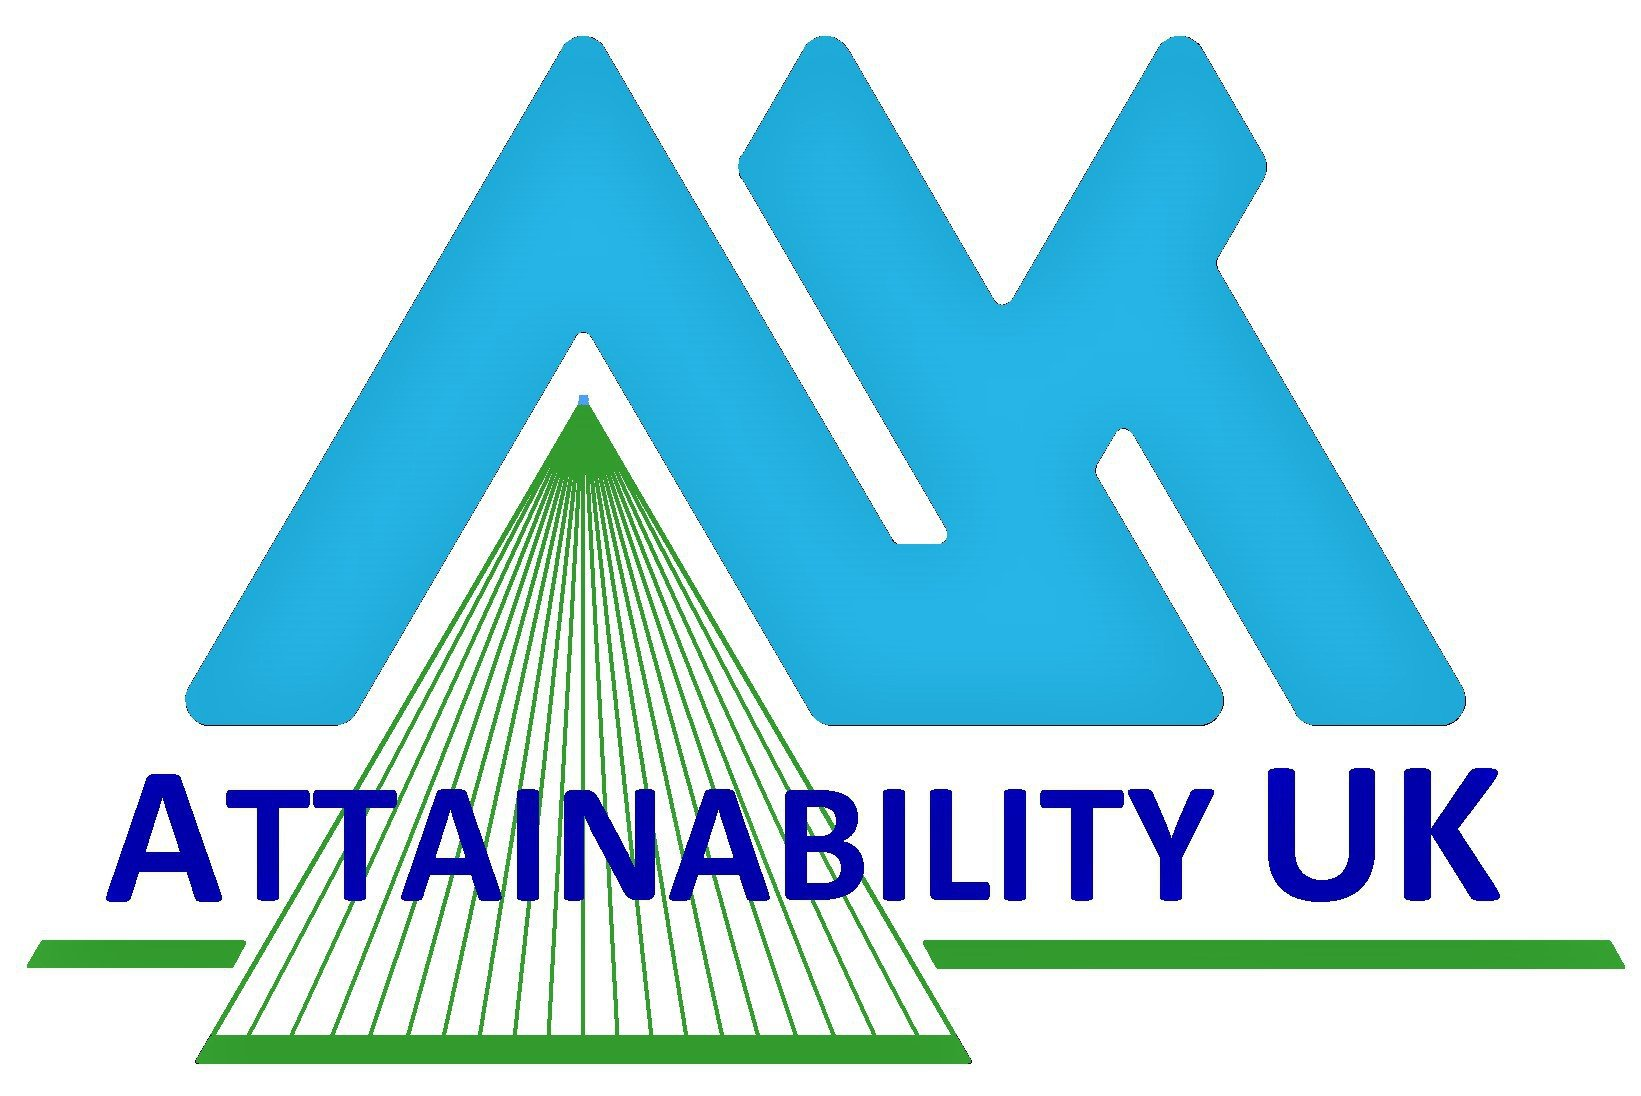 Attainability UK Ltd